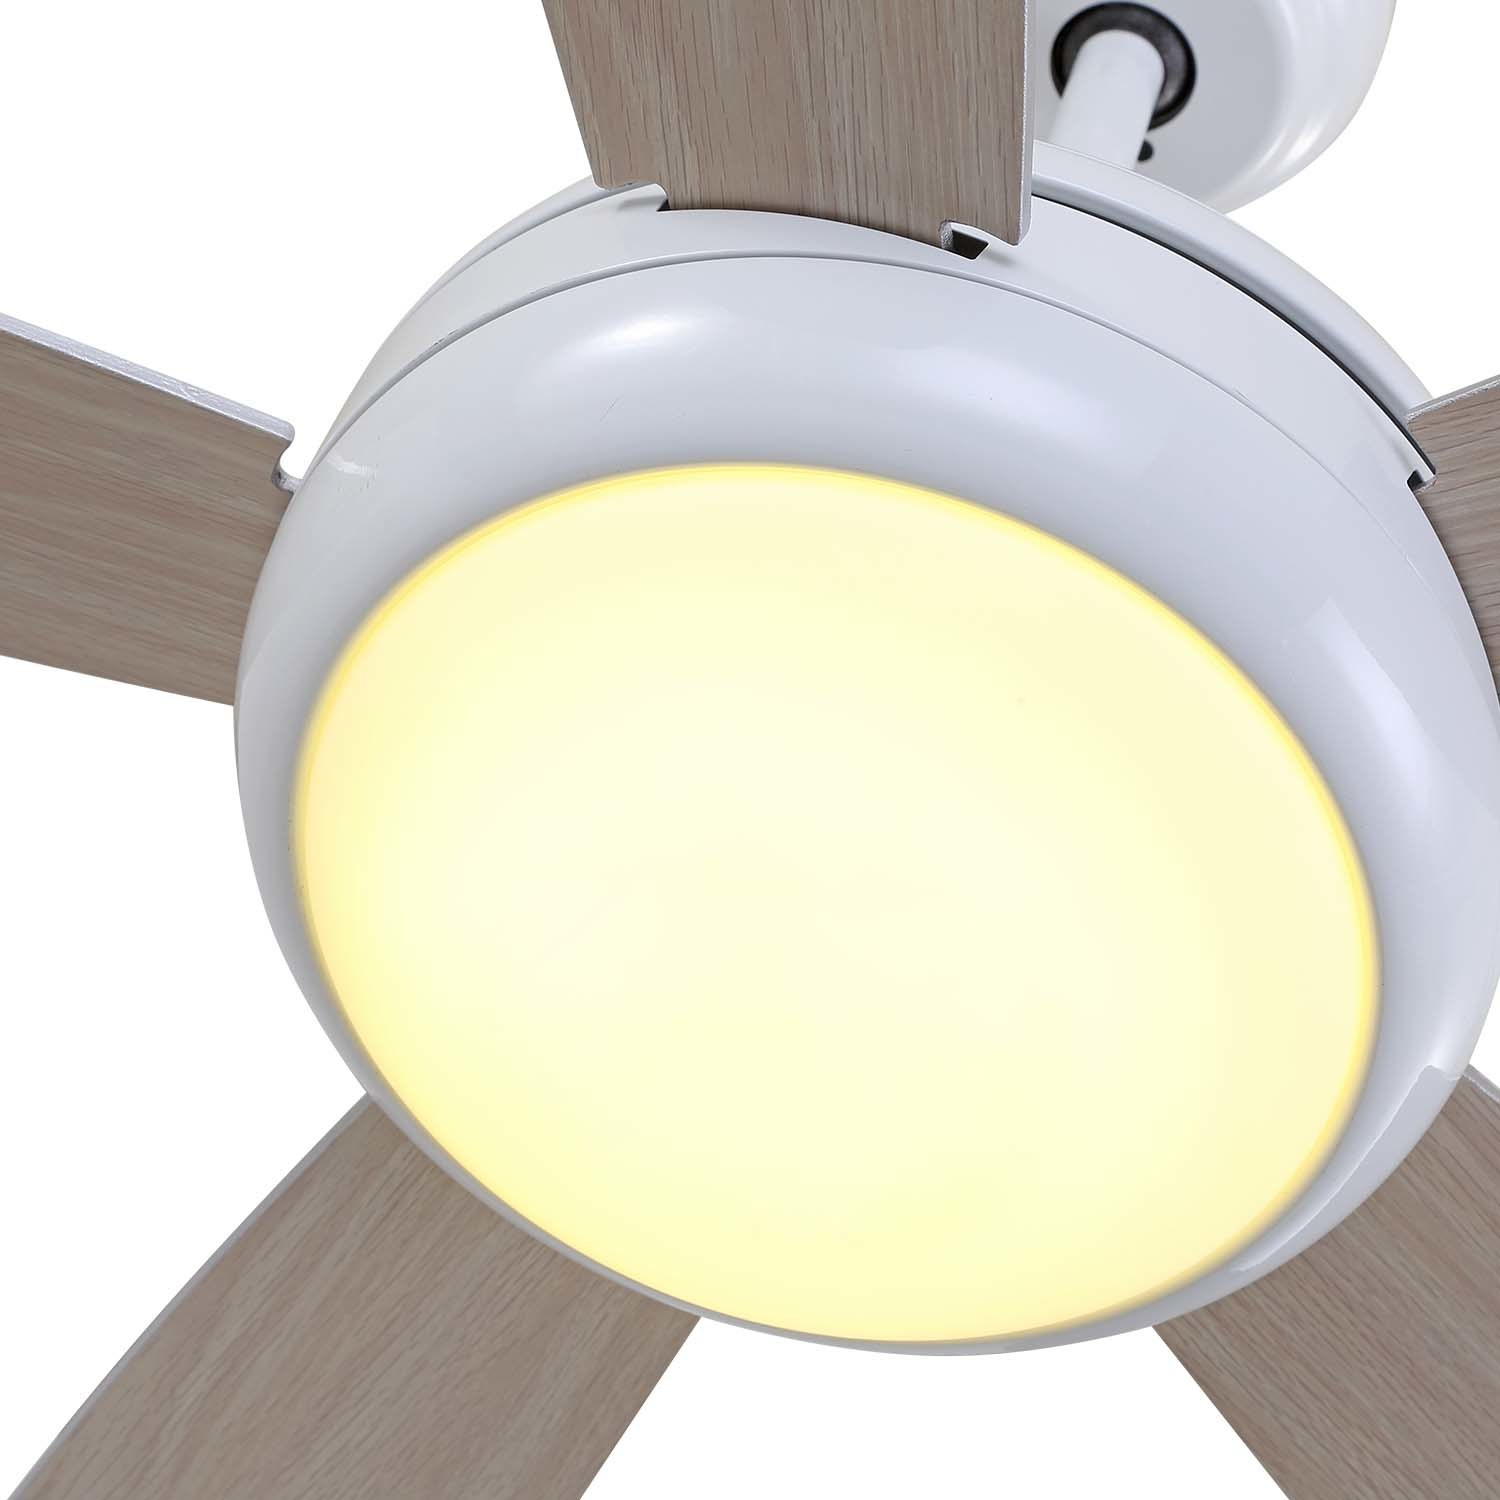 New Bldc Ceiling Fan With 3 Color Light